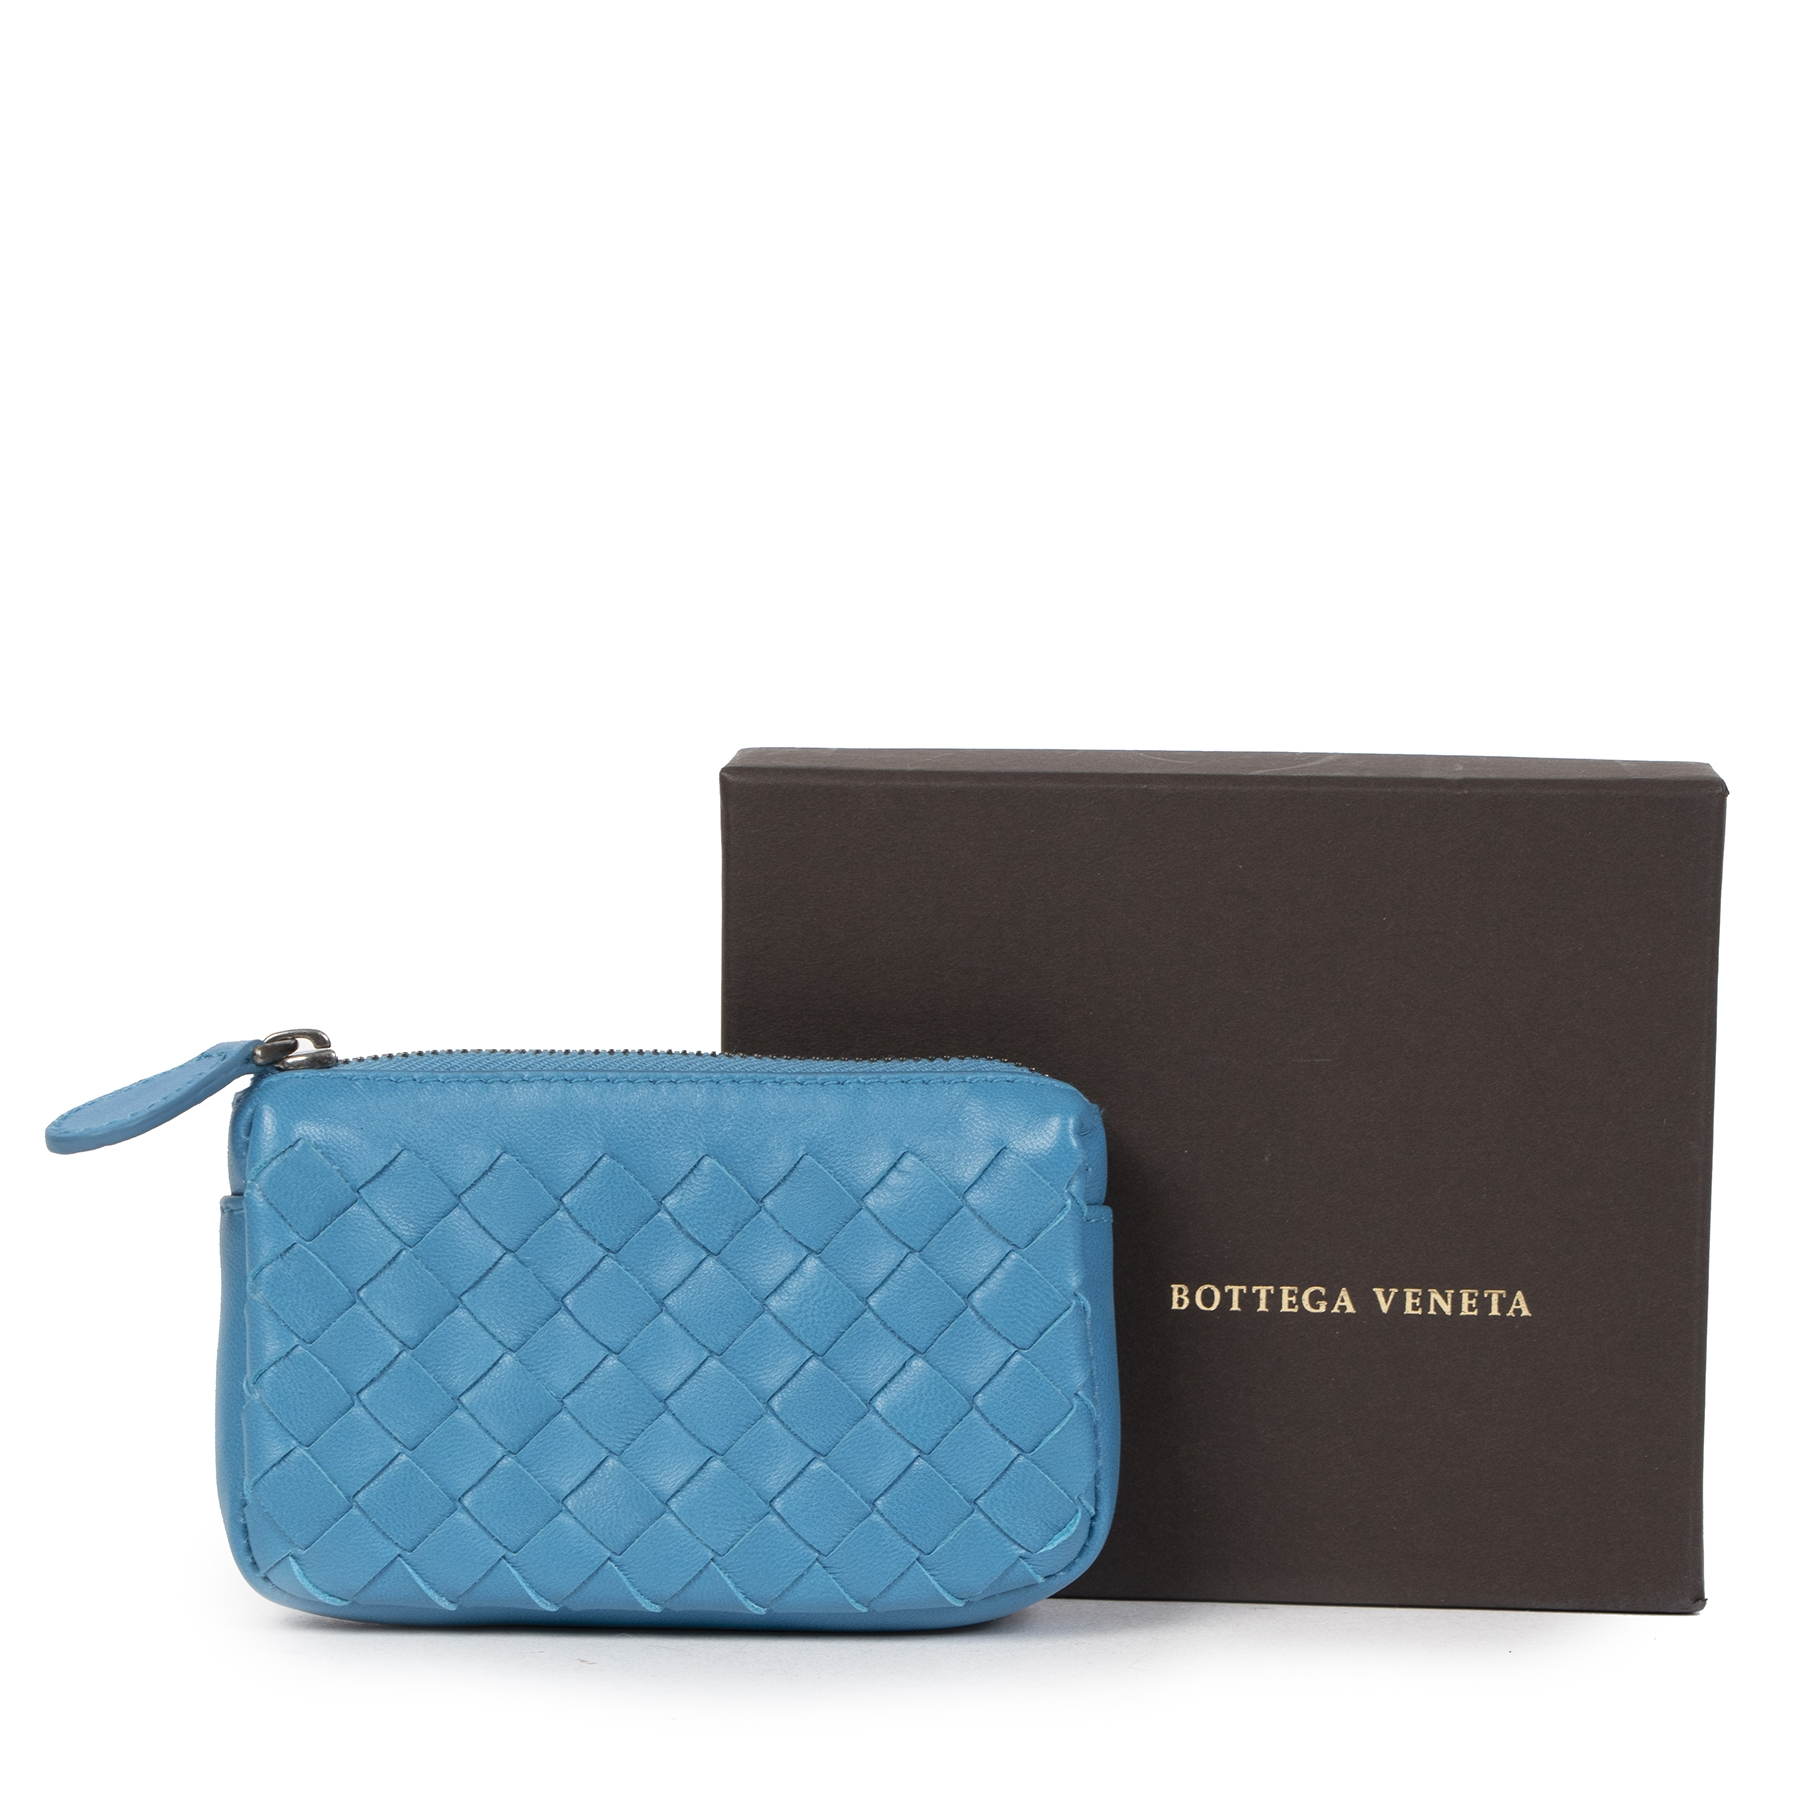 Koop en verkoop uw authentieke designer Bottega Veneta Small Blue Coin Purse